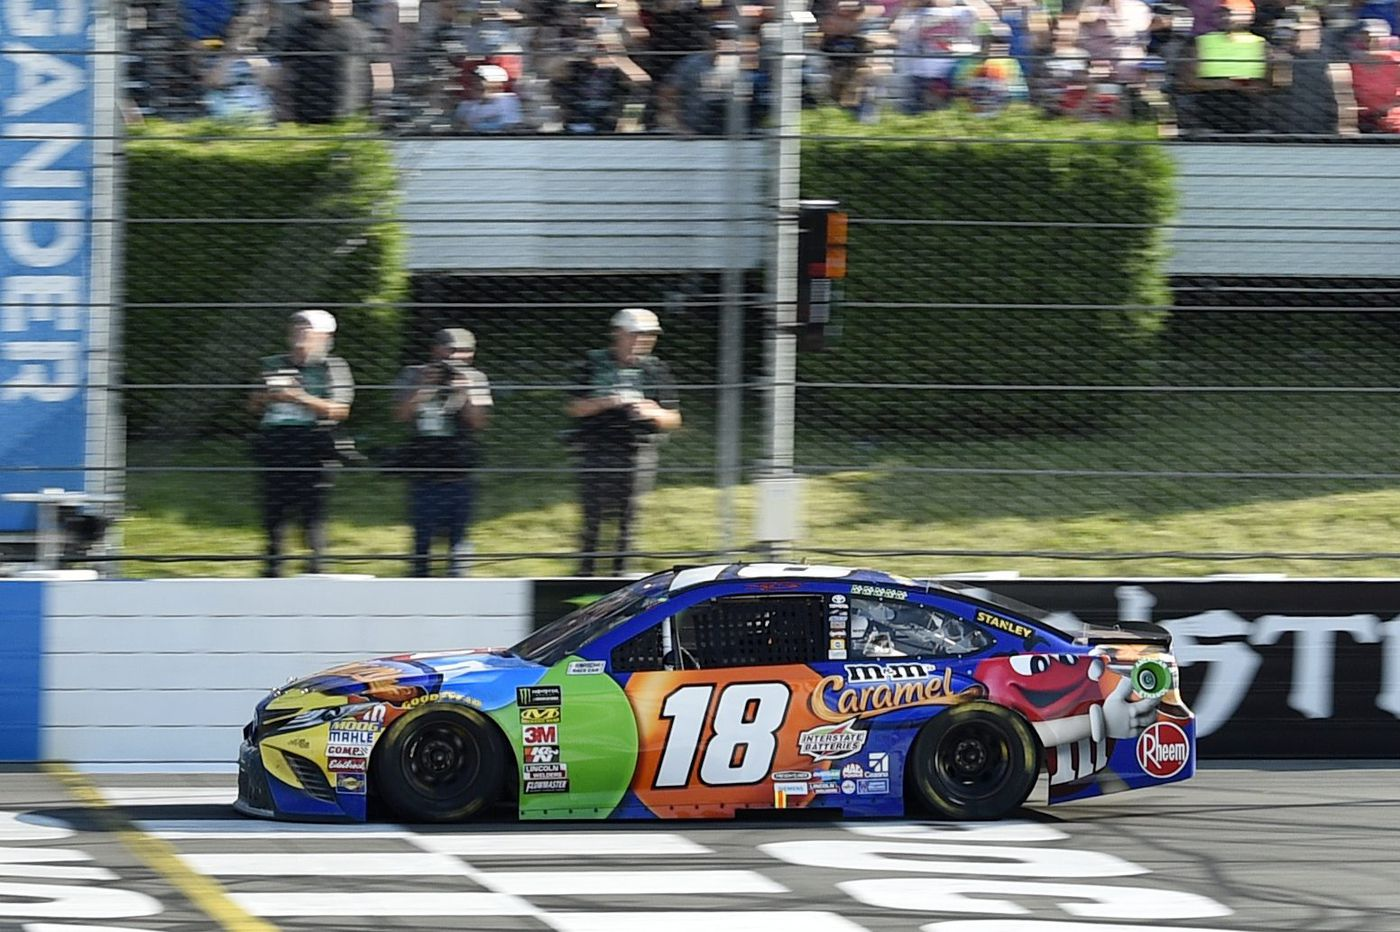 Kyle Busch wins the Gander Outdoors 400 to sweep the weekend at Pocono Raceway